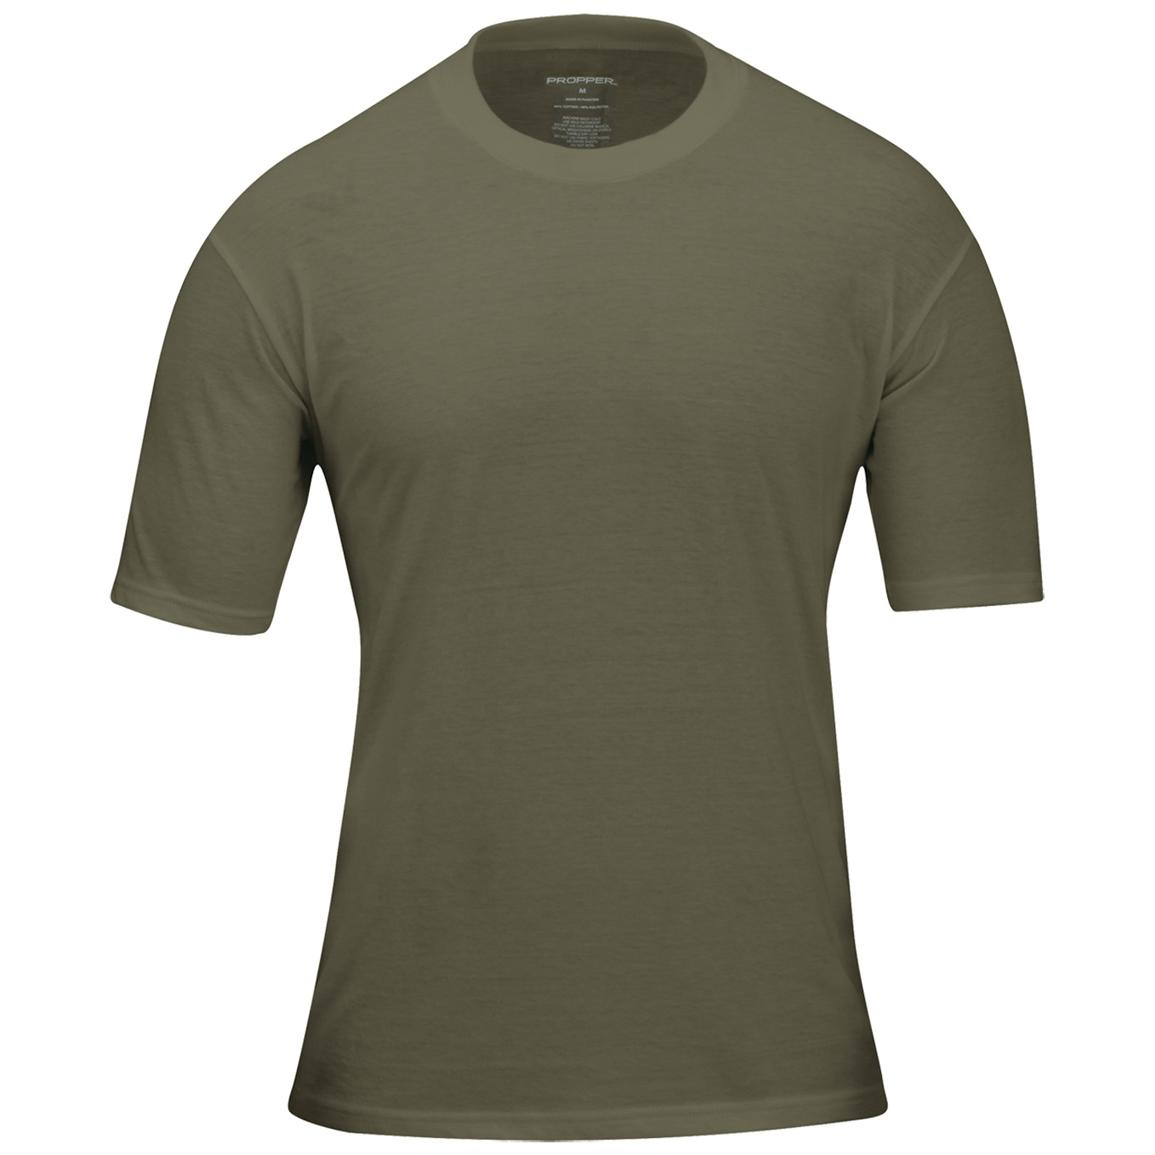 3-Pk. Men's Propper™ Pack 3™ T-shirts, Olive